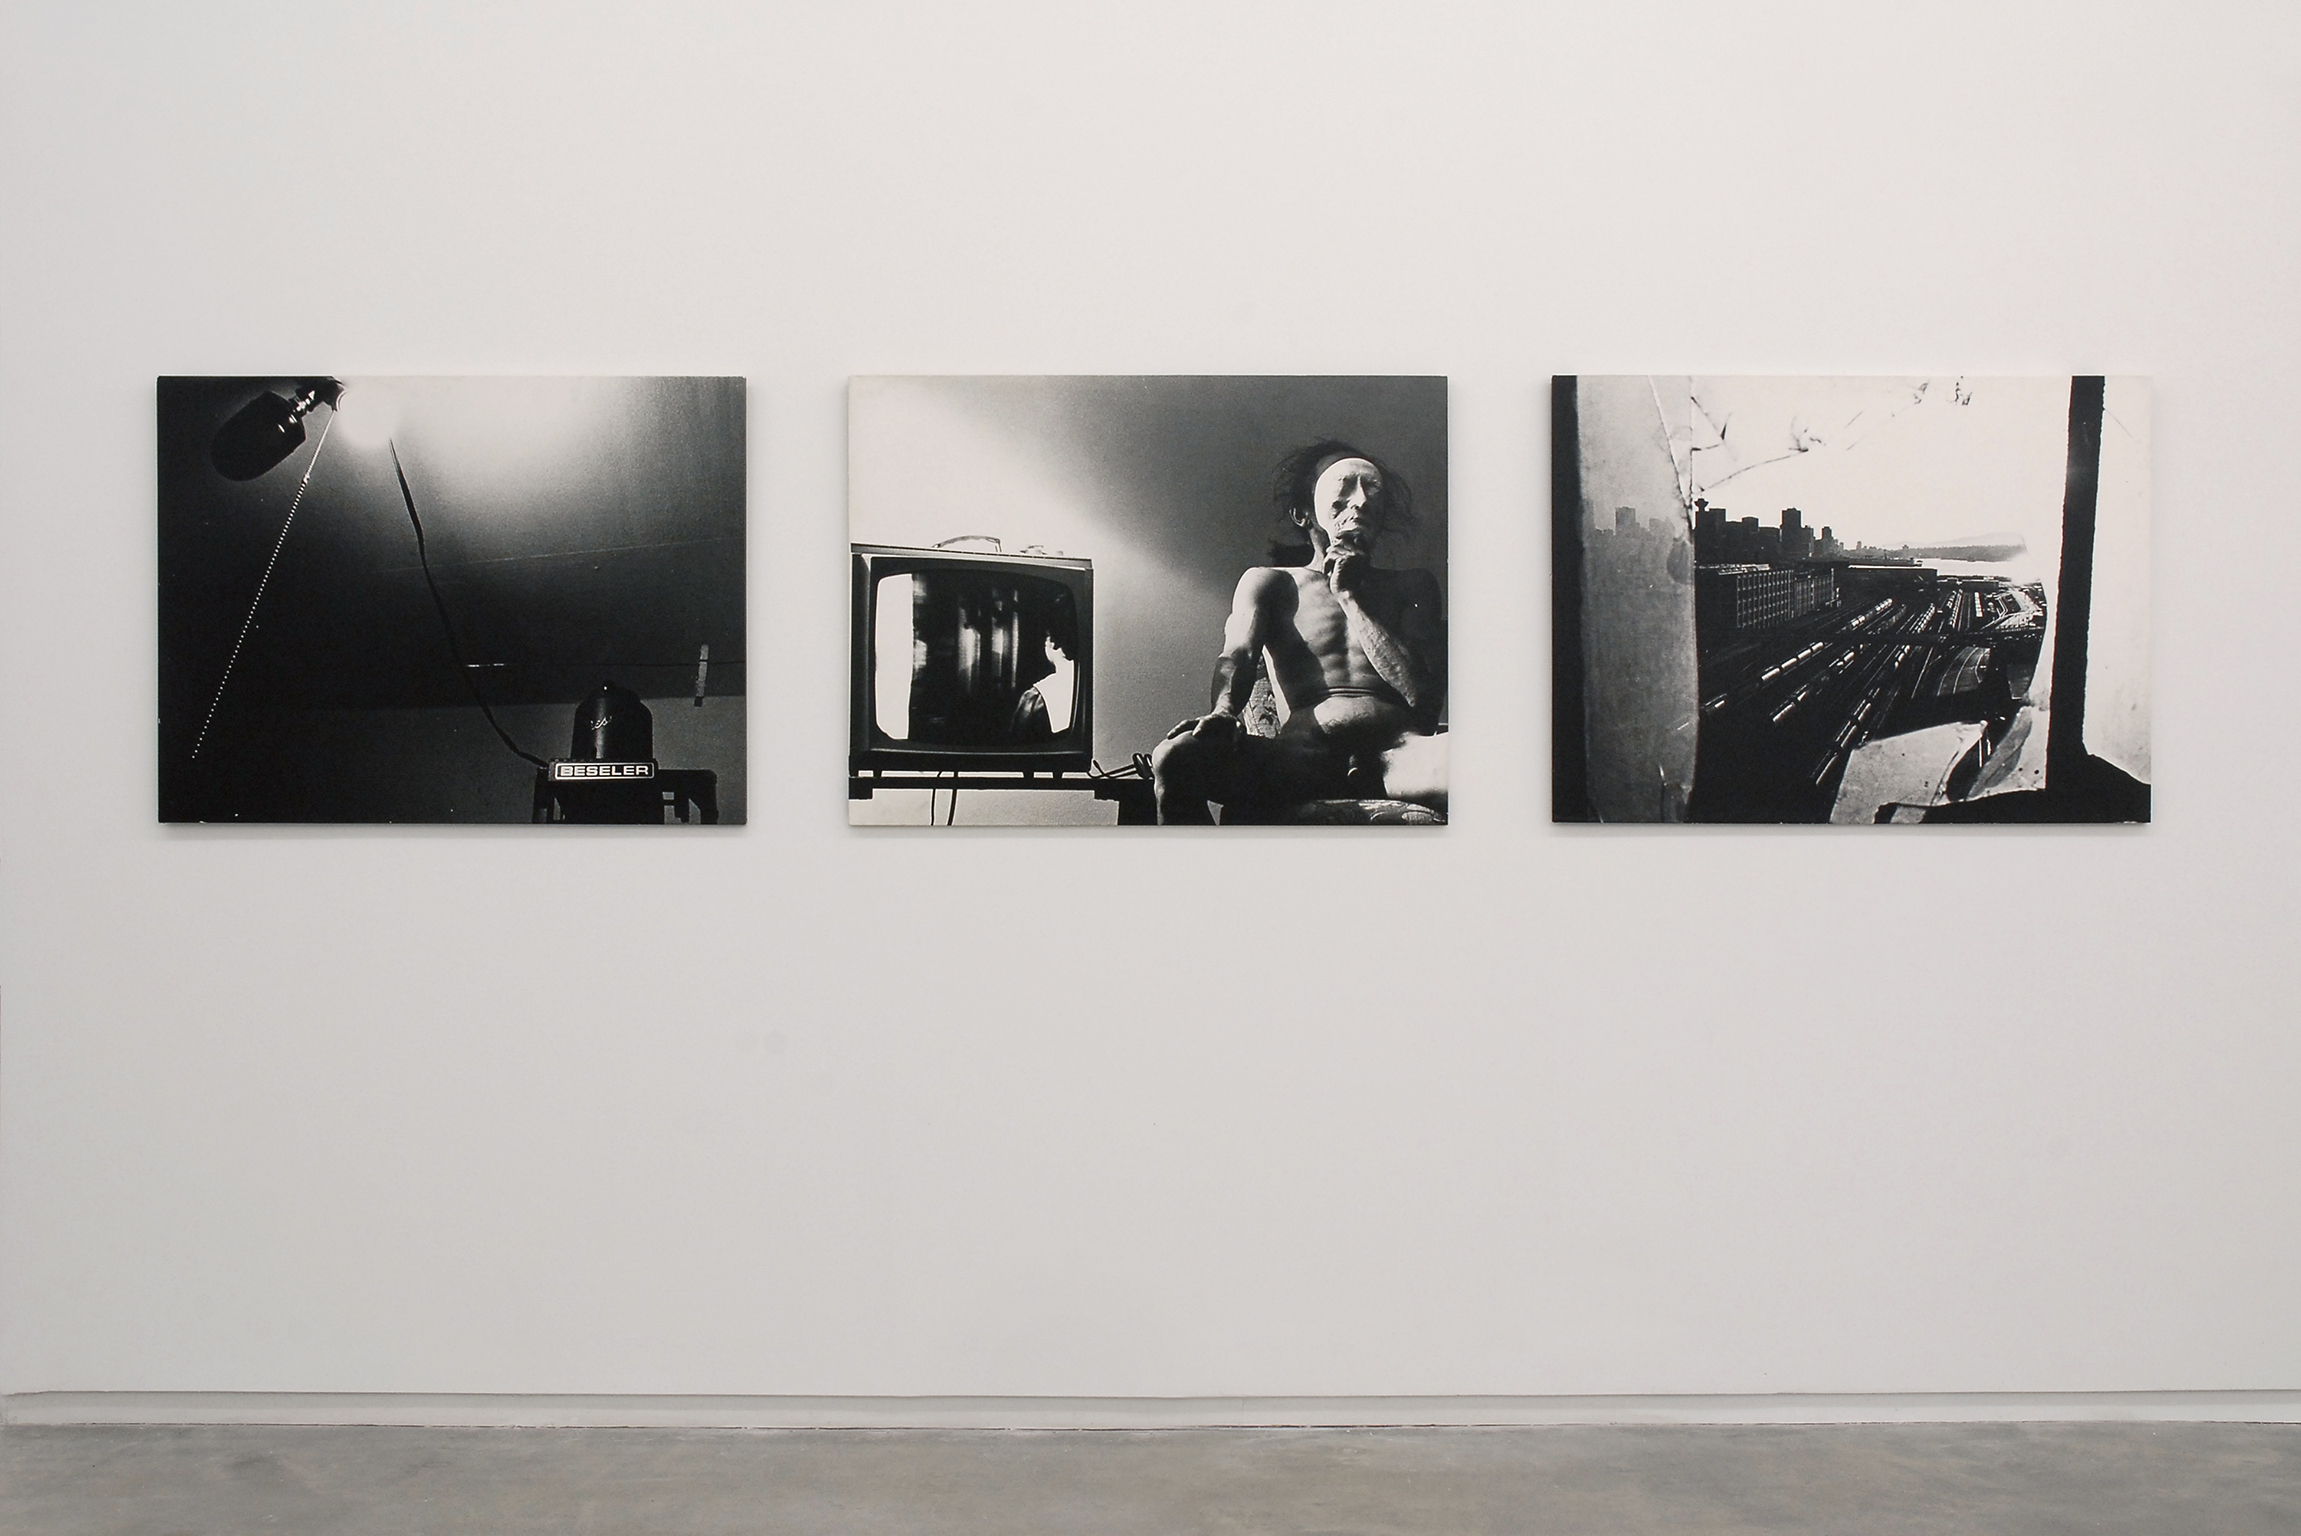 Roy Kiyooka, Untitled (From 13 Cameras), 3 panels, silver print photos, paper wrapped on wood panel, each 30 x 40 in. (77 x 102 cm) by